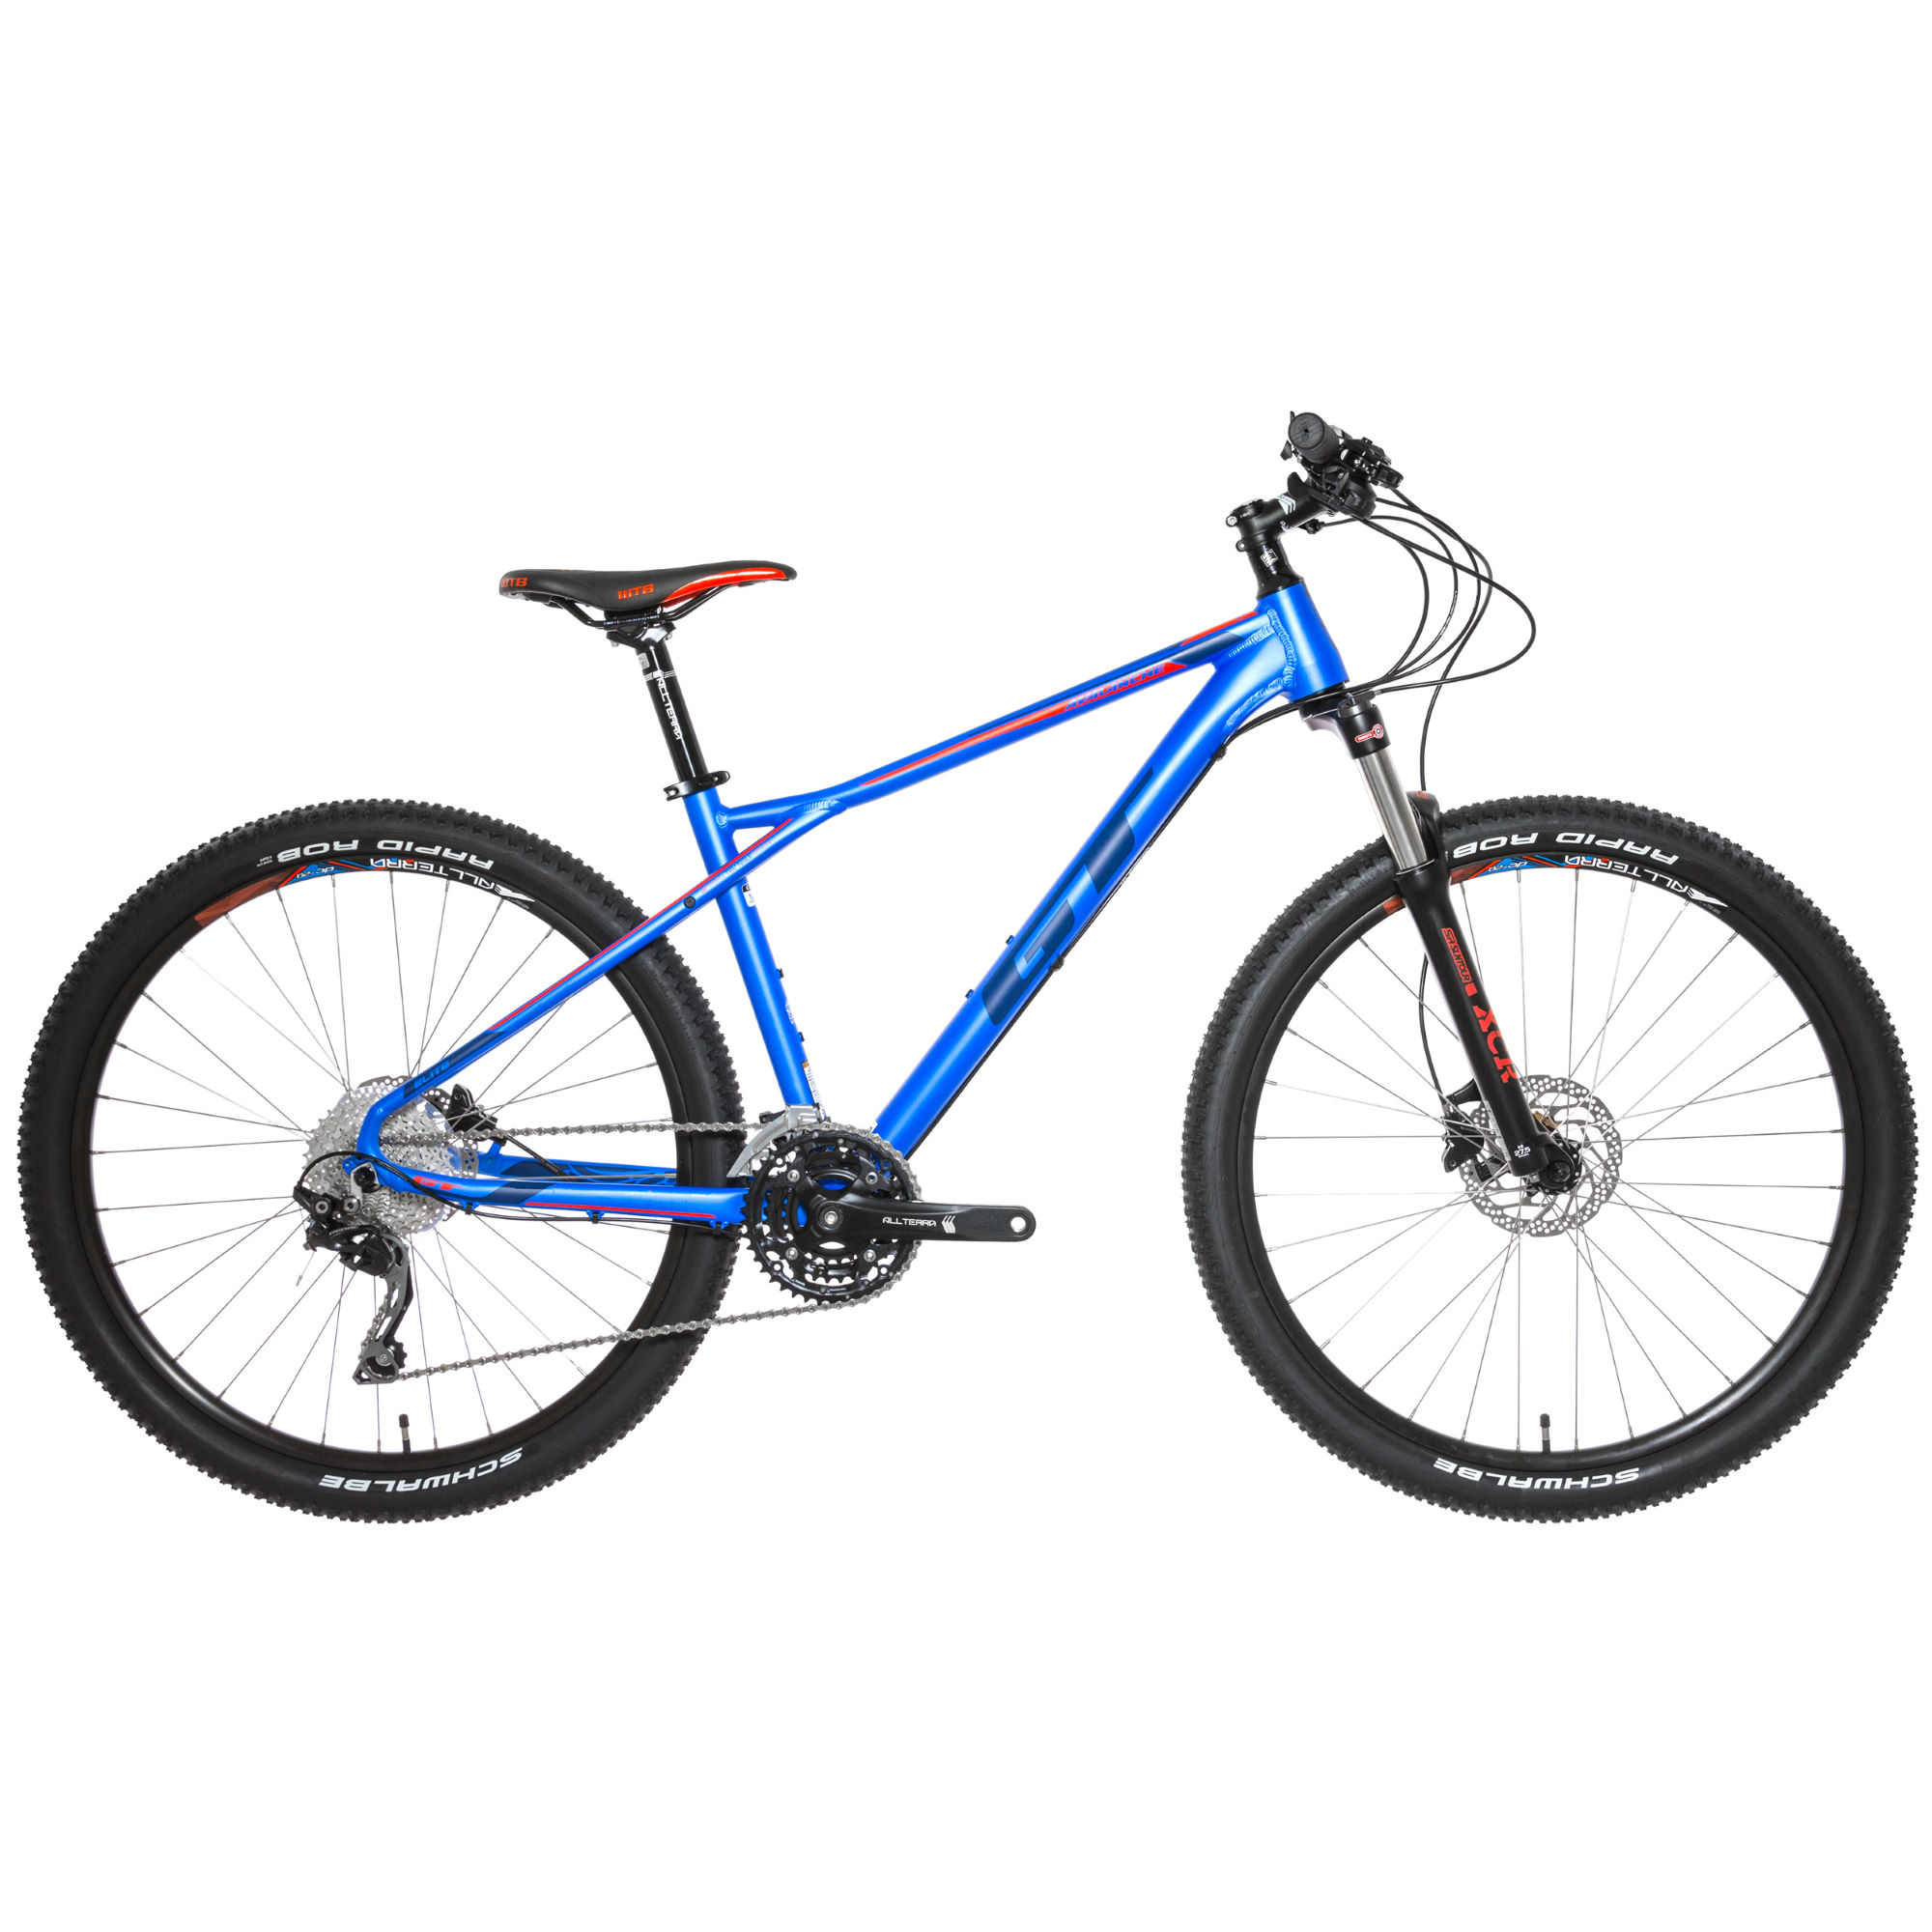 Gt Avalanche Elite 2017 Mountain Bike Hard Tail